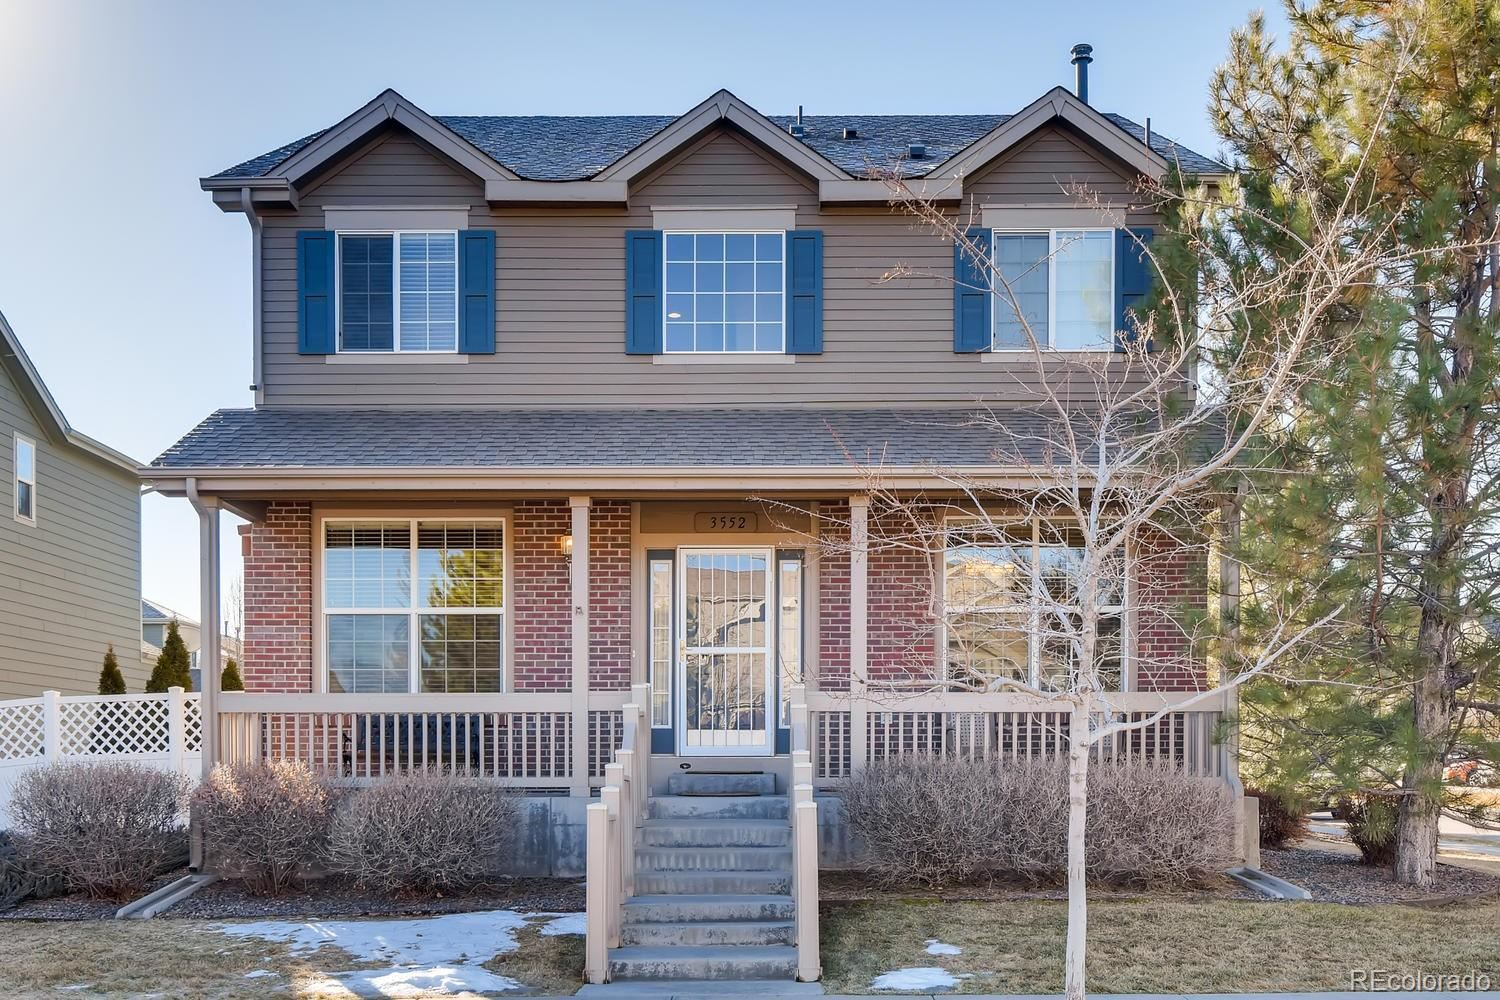 3552 W 125th Drive, Broomfield, CO 80020 - #: 5504895